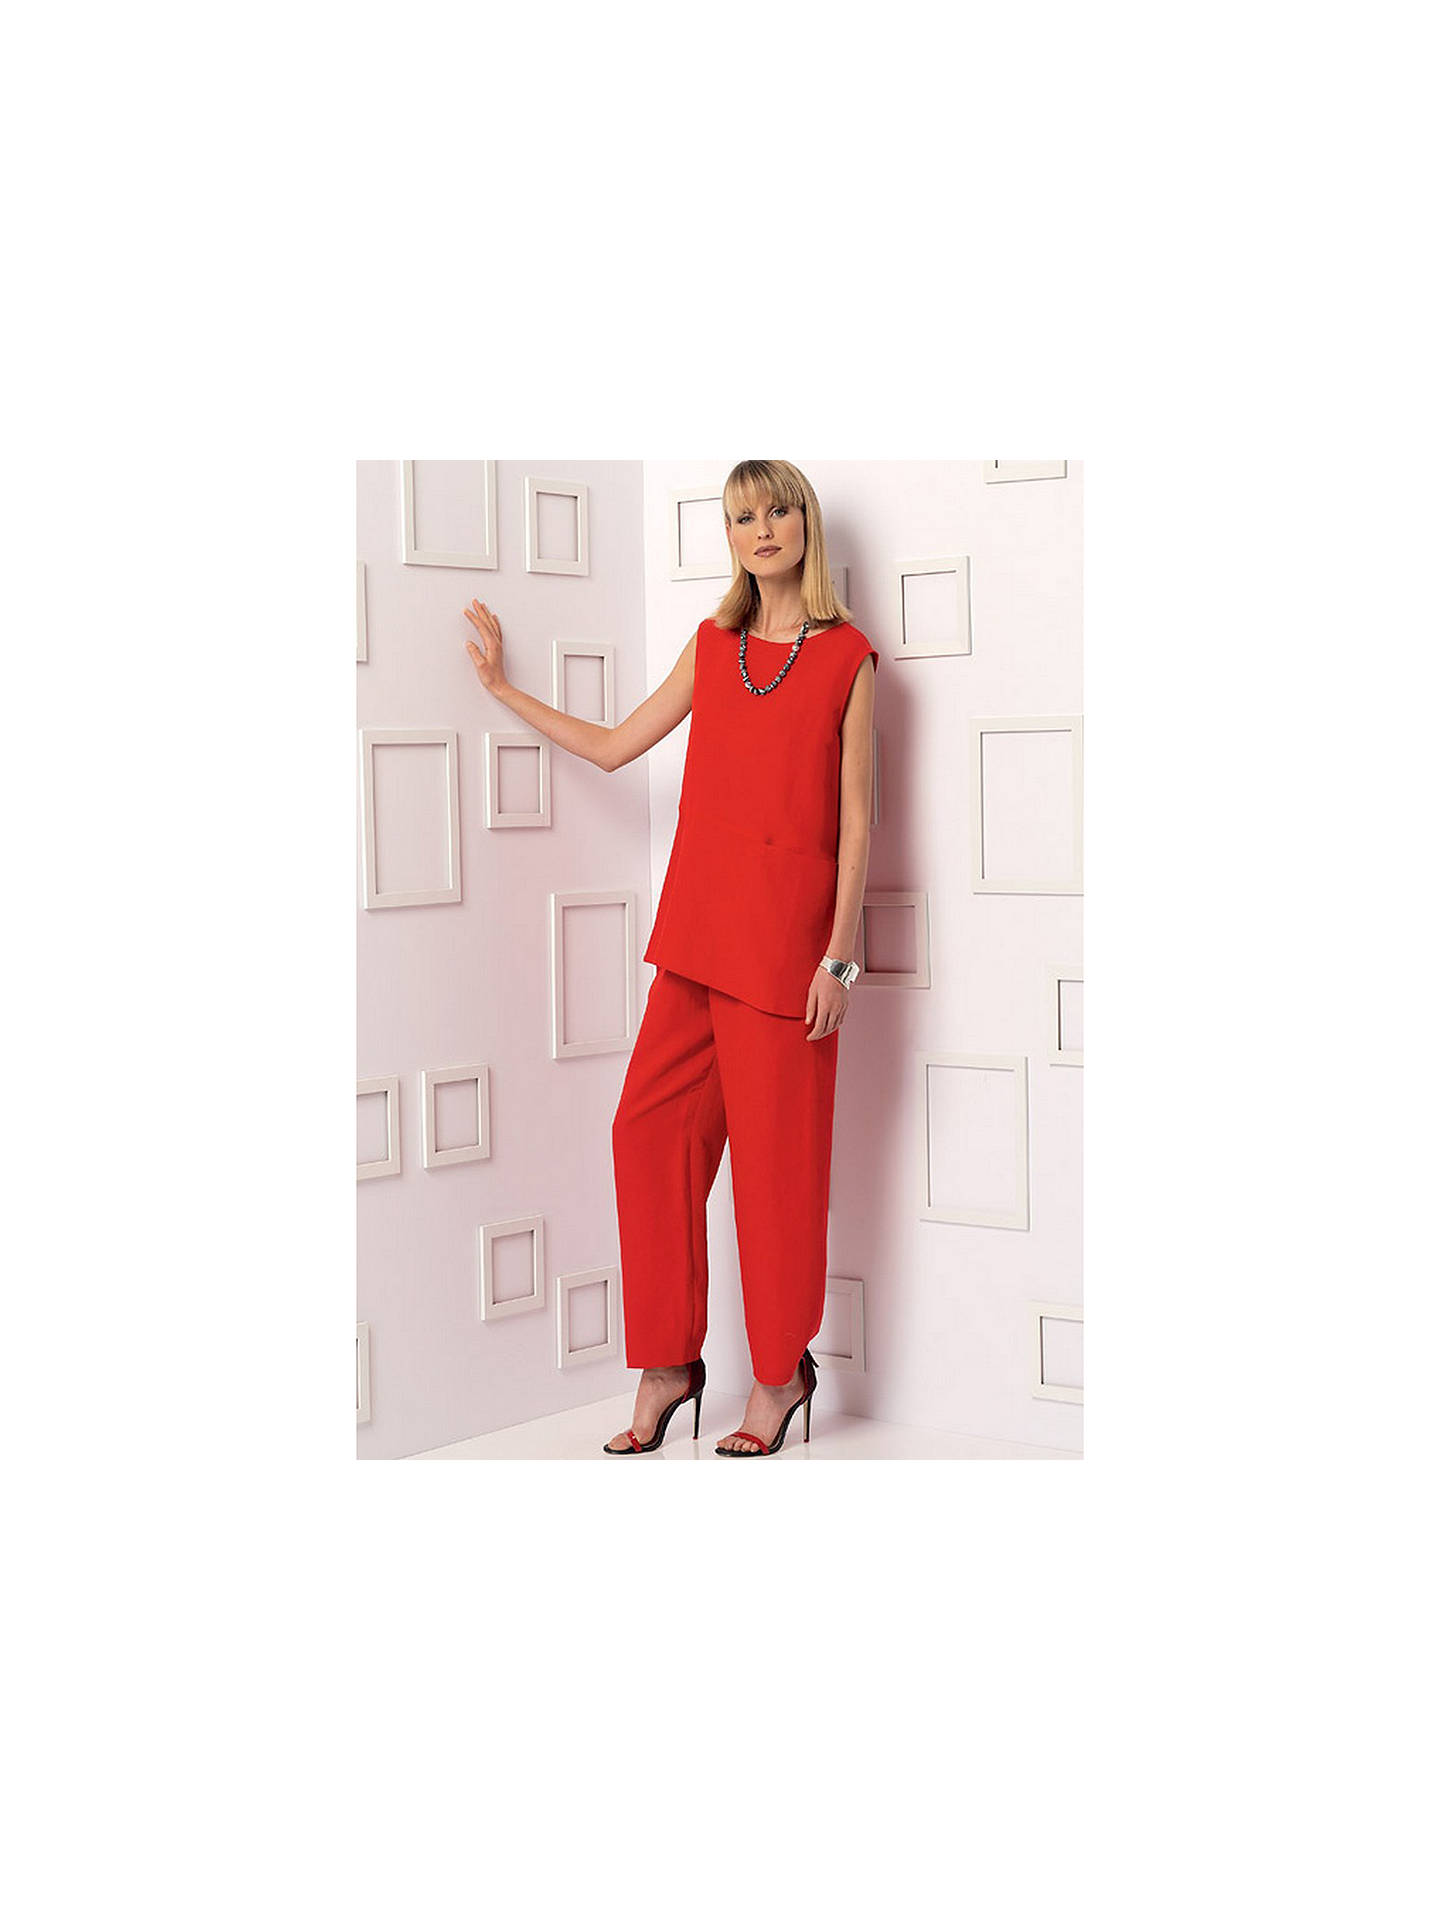 Buy Vogue Misses' Women's Top and Trousers Sewing Pattern, 9193, F5 Online at johnlewis.com